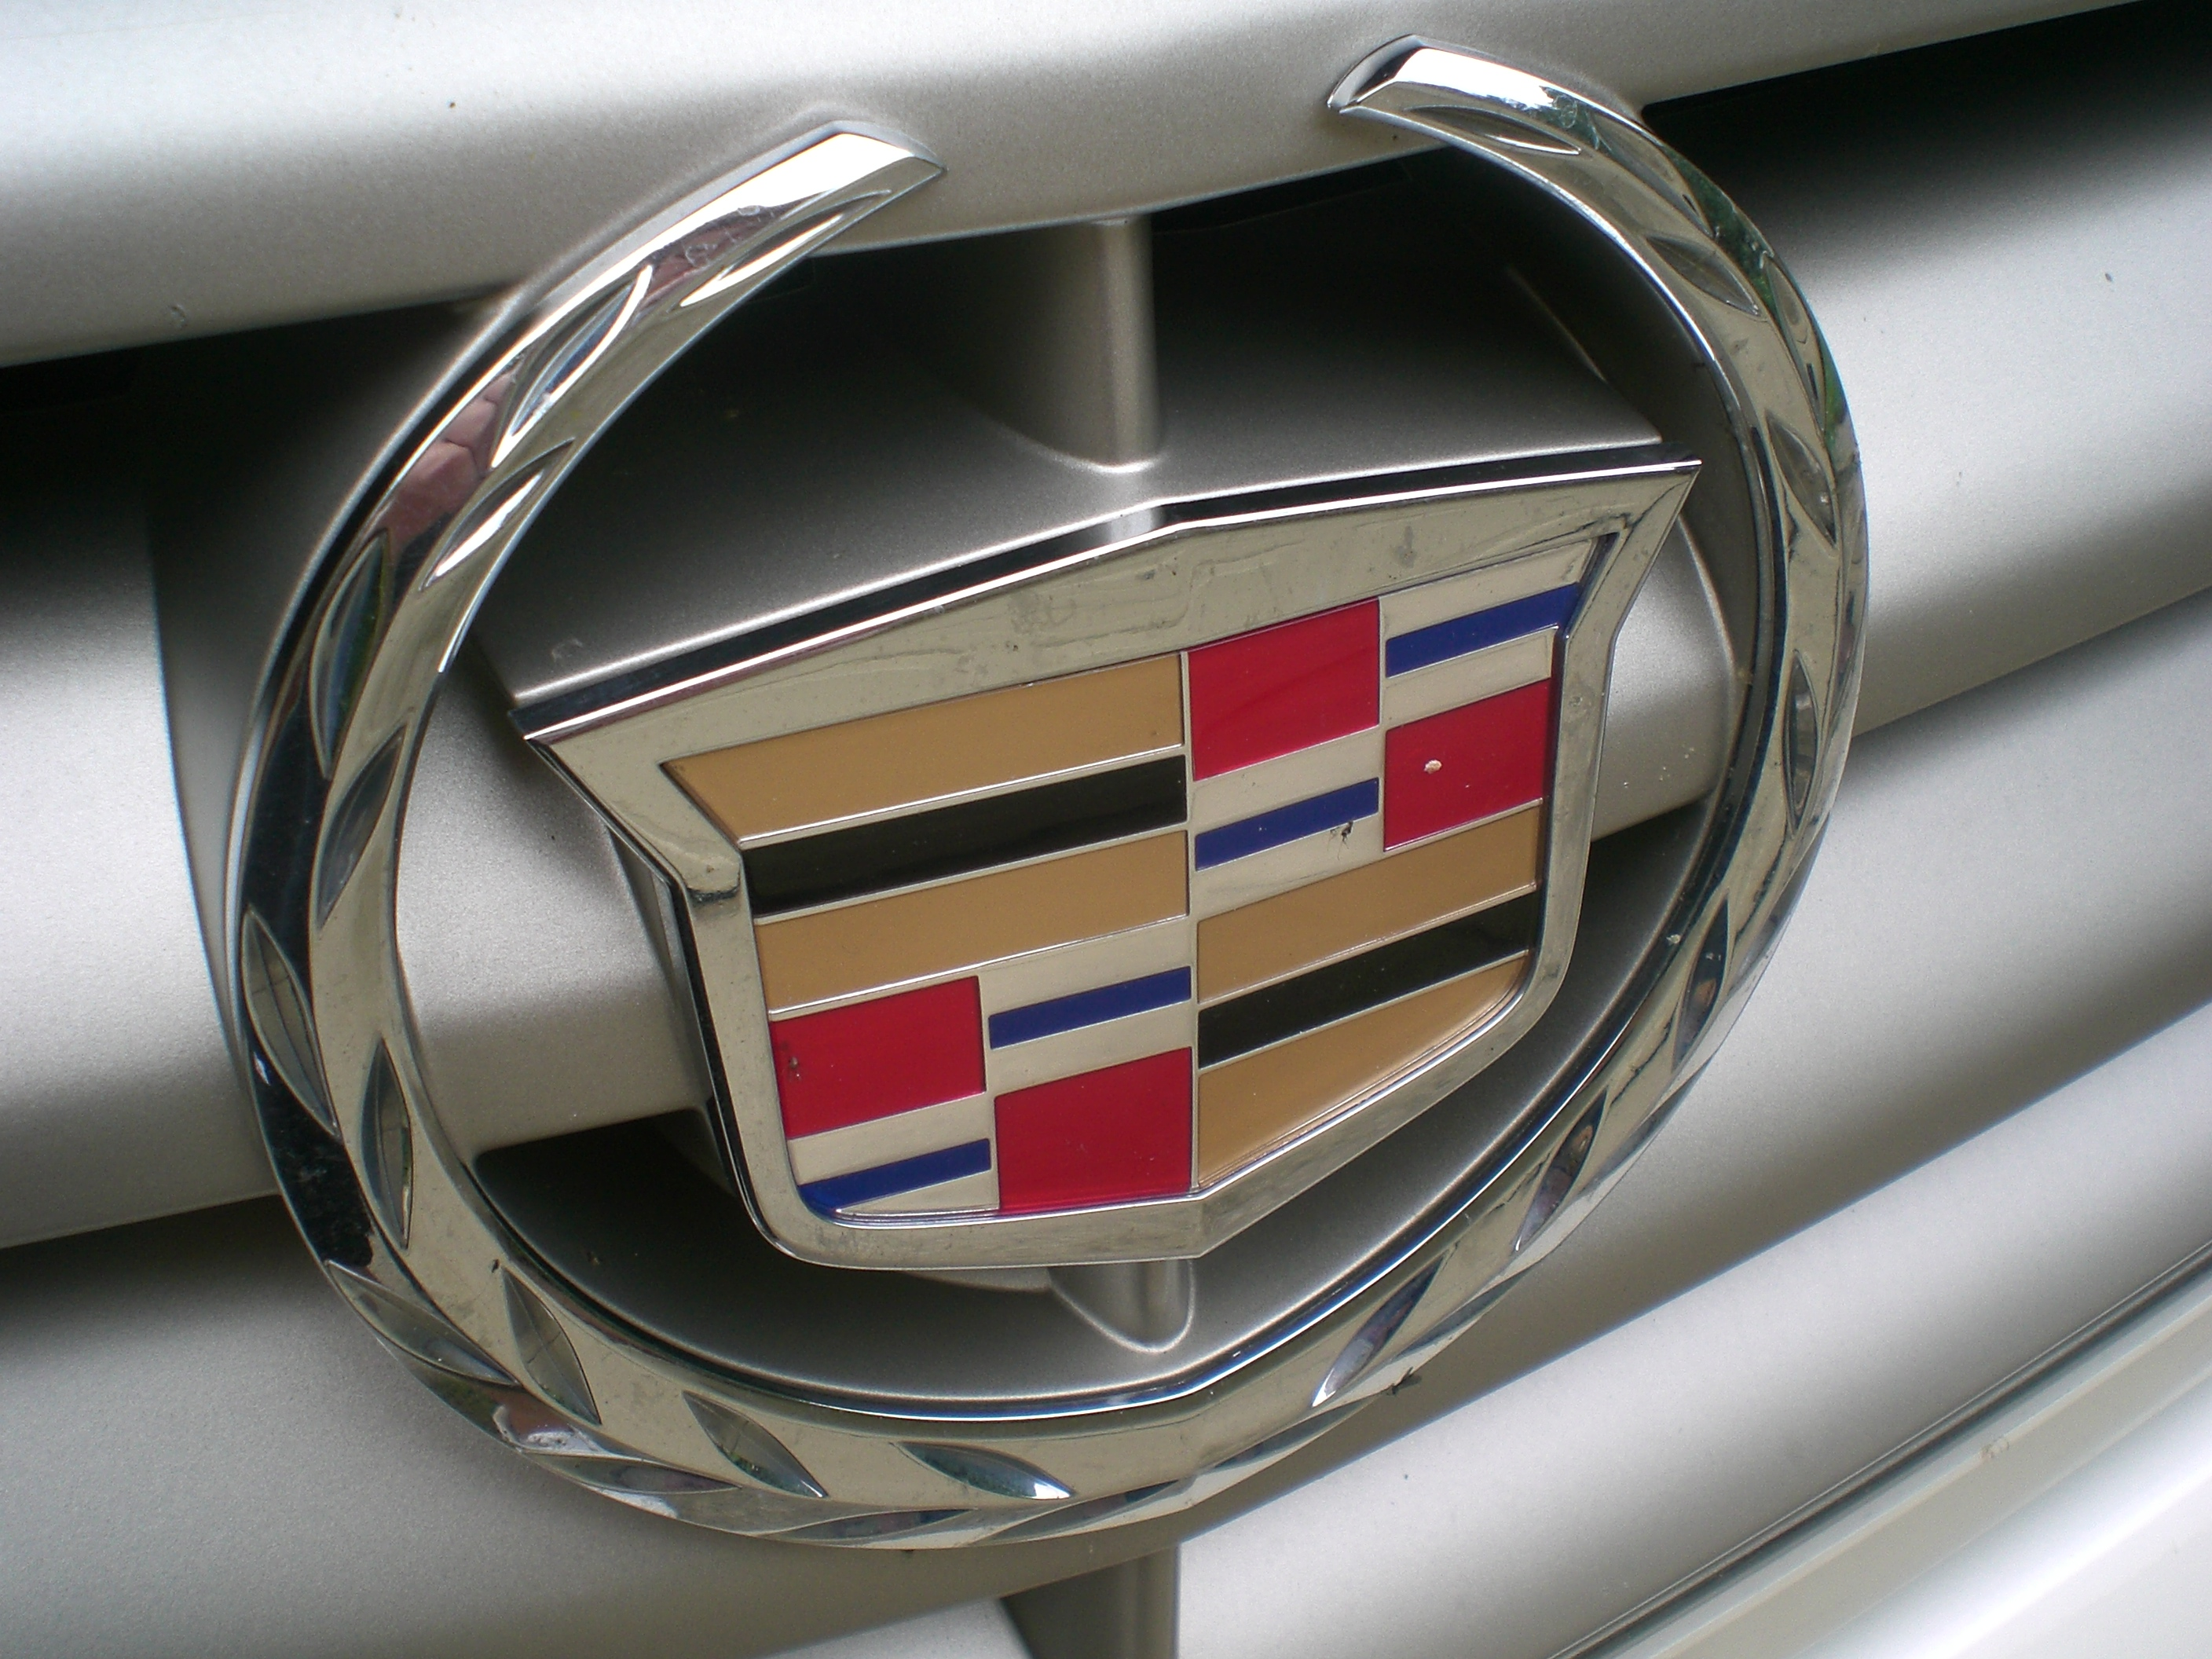 cadillac logo cars images wallpapers Desktop Backgrounds for HD 2816x2112